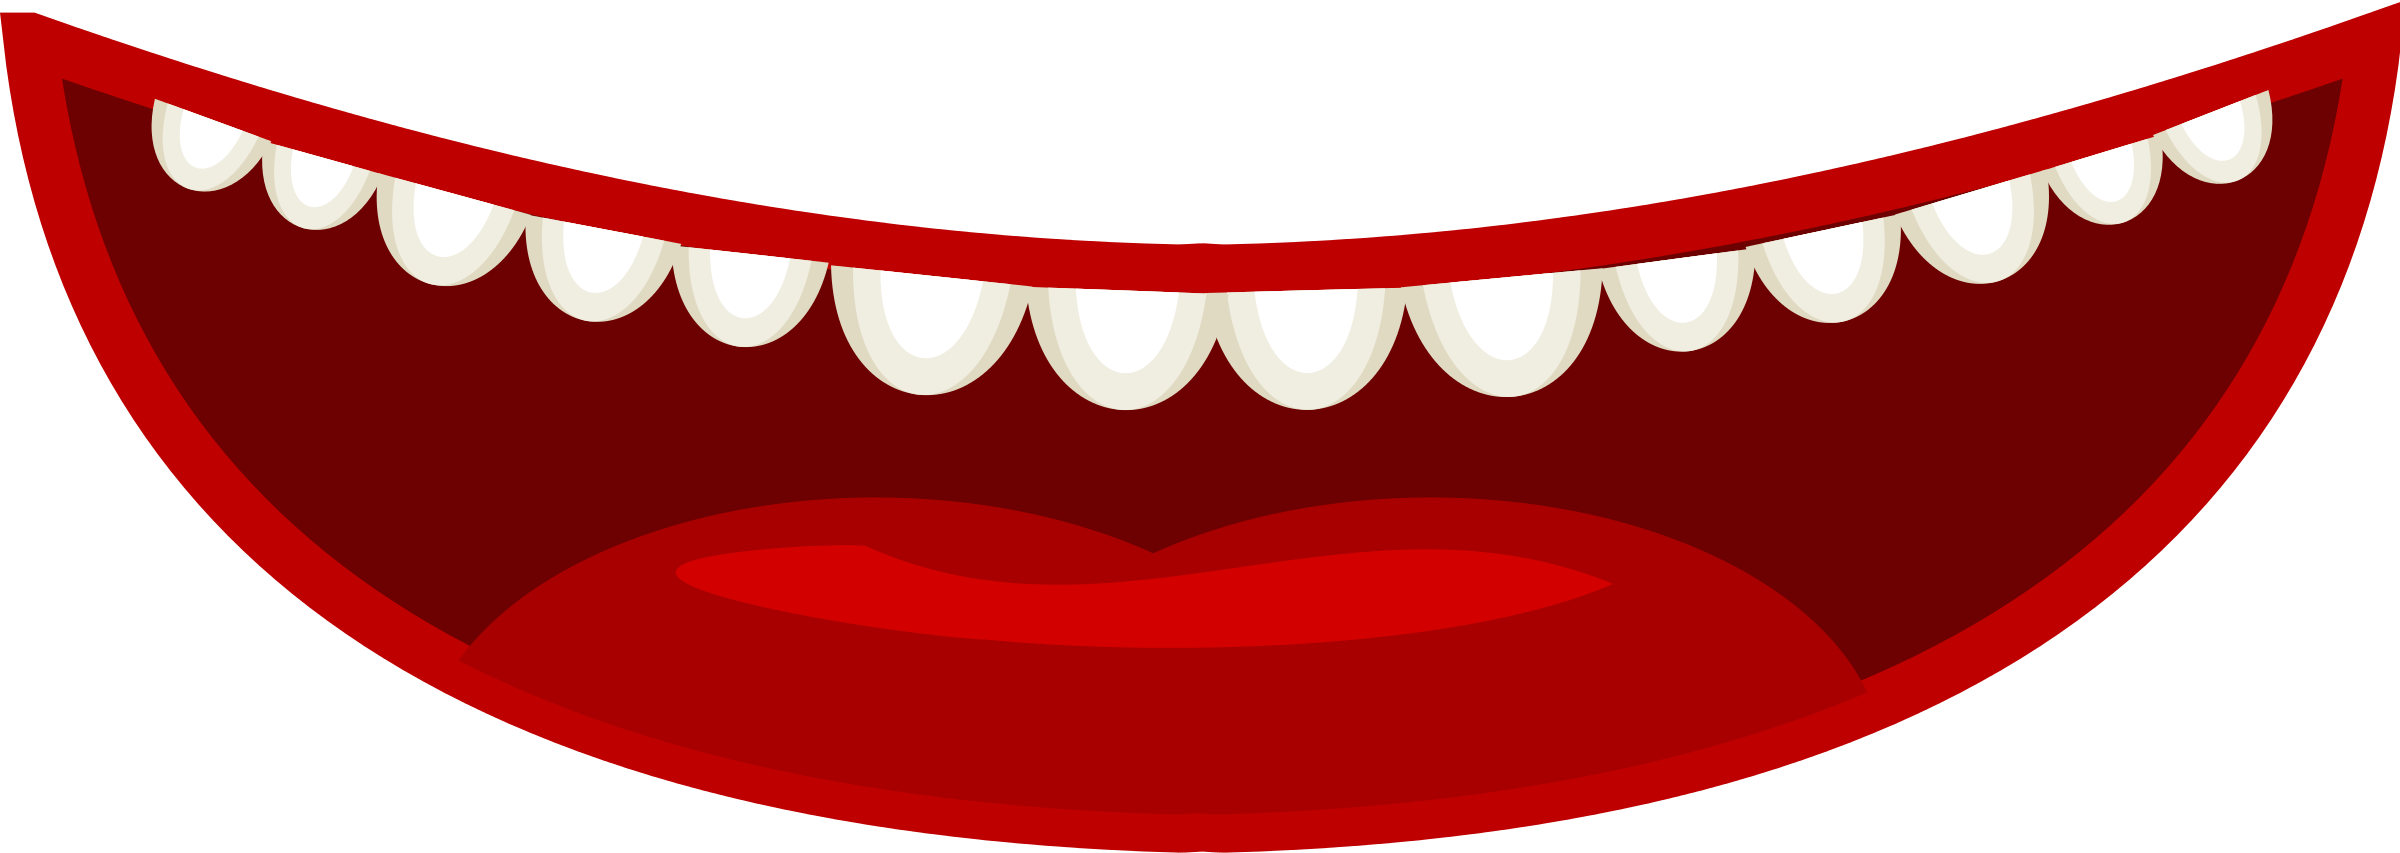 Boy Mouth With Teeth Clipart - Clipart Kid